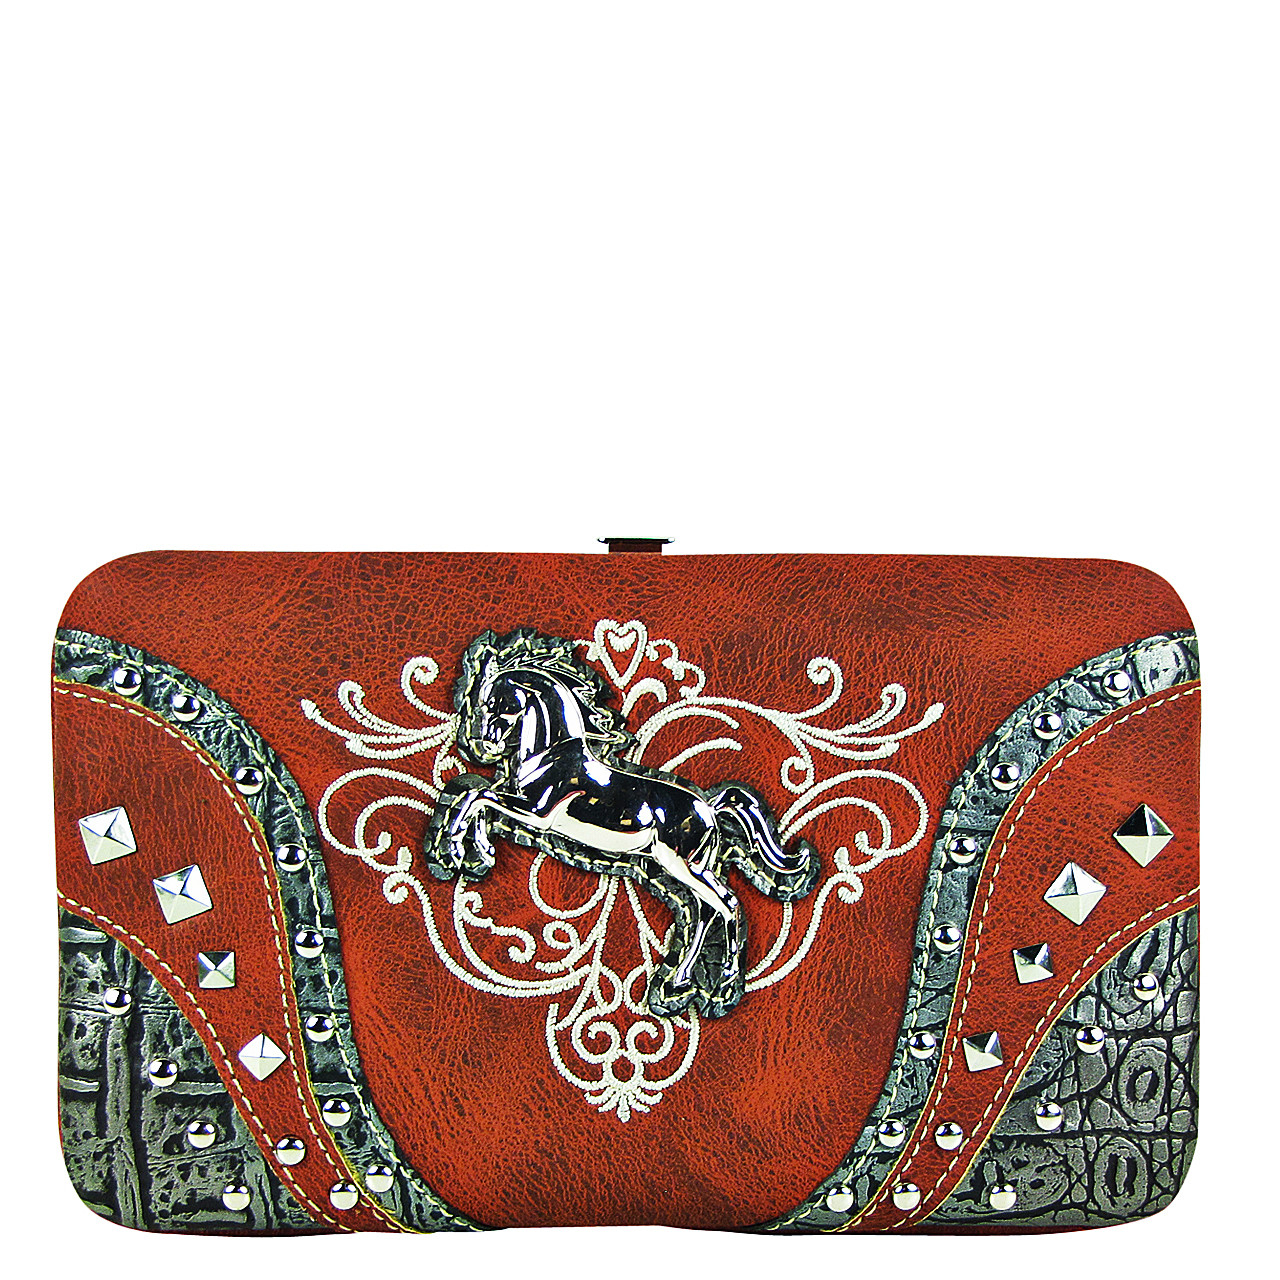 RED STITCHED TOOLED STUDDED HORSE LOOK FLAT THICK WALLET FW2-12126RED